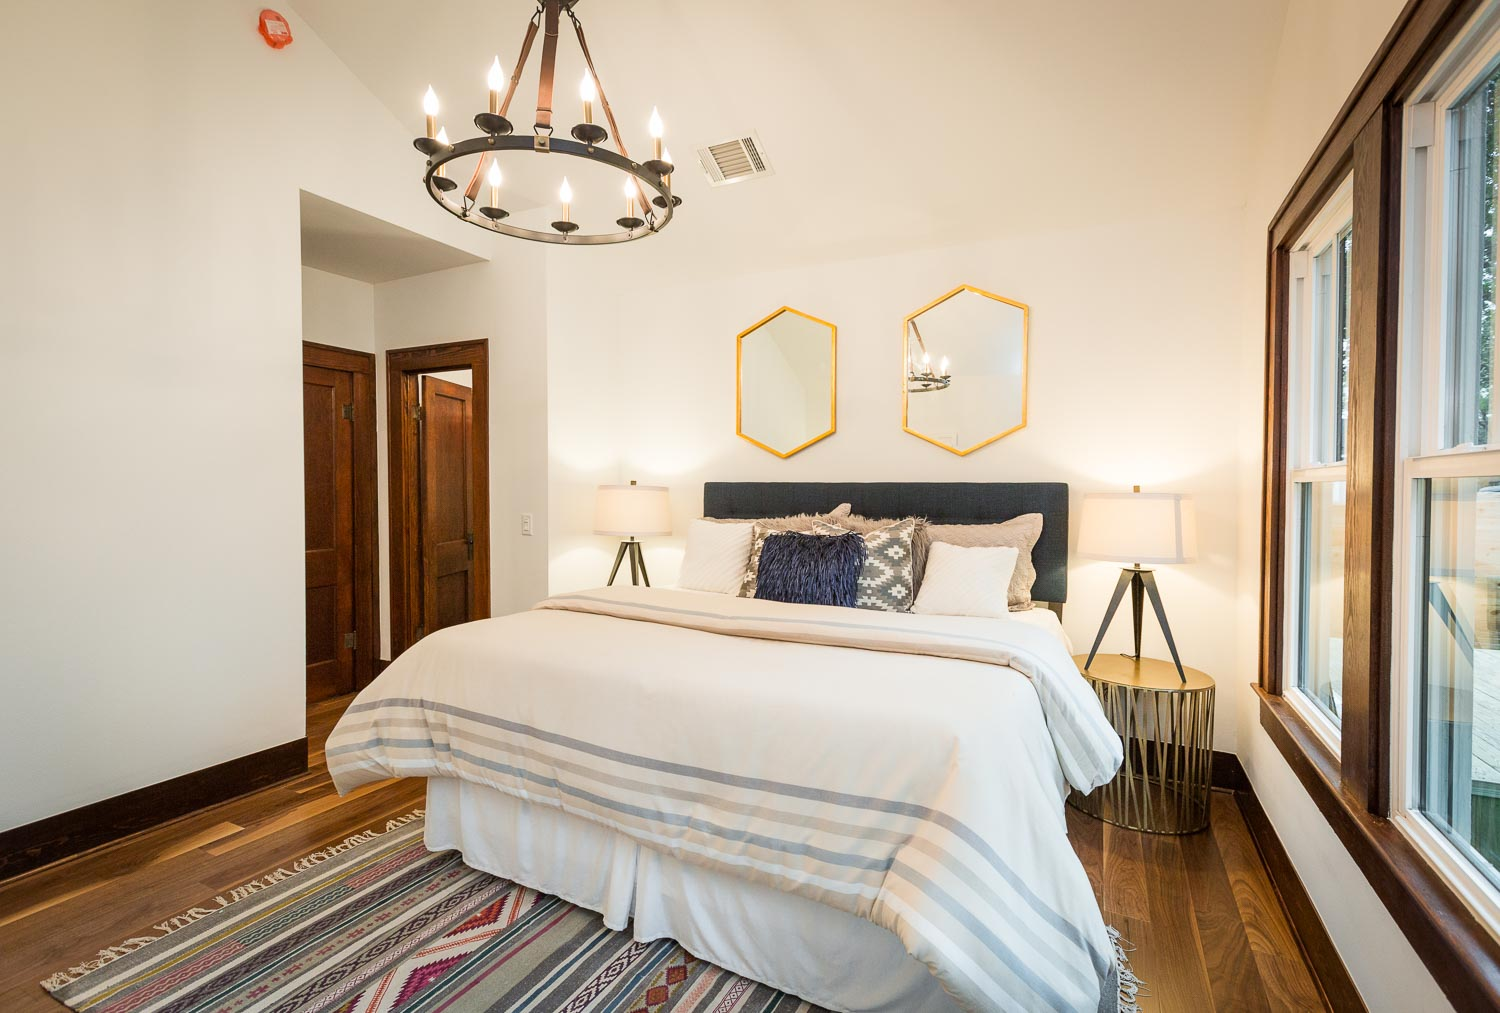 The master bedroom can accommodate a king size bed. The vaulted ceiling, chandelier, walnut floors, and dark wood trim add so much character and warmth to this amazing room.